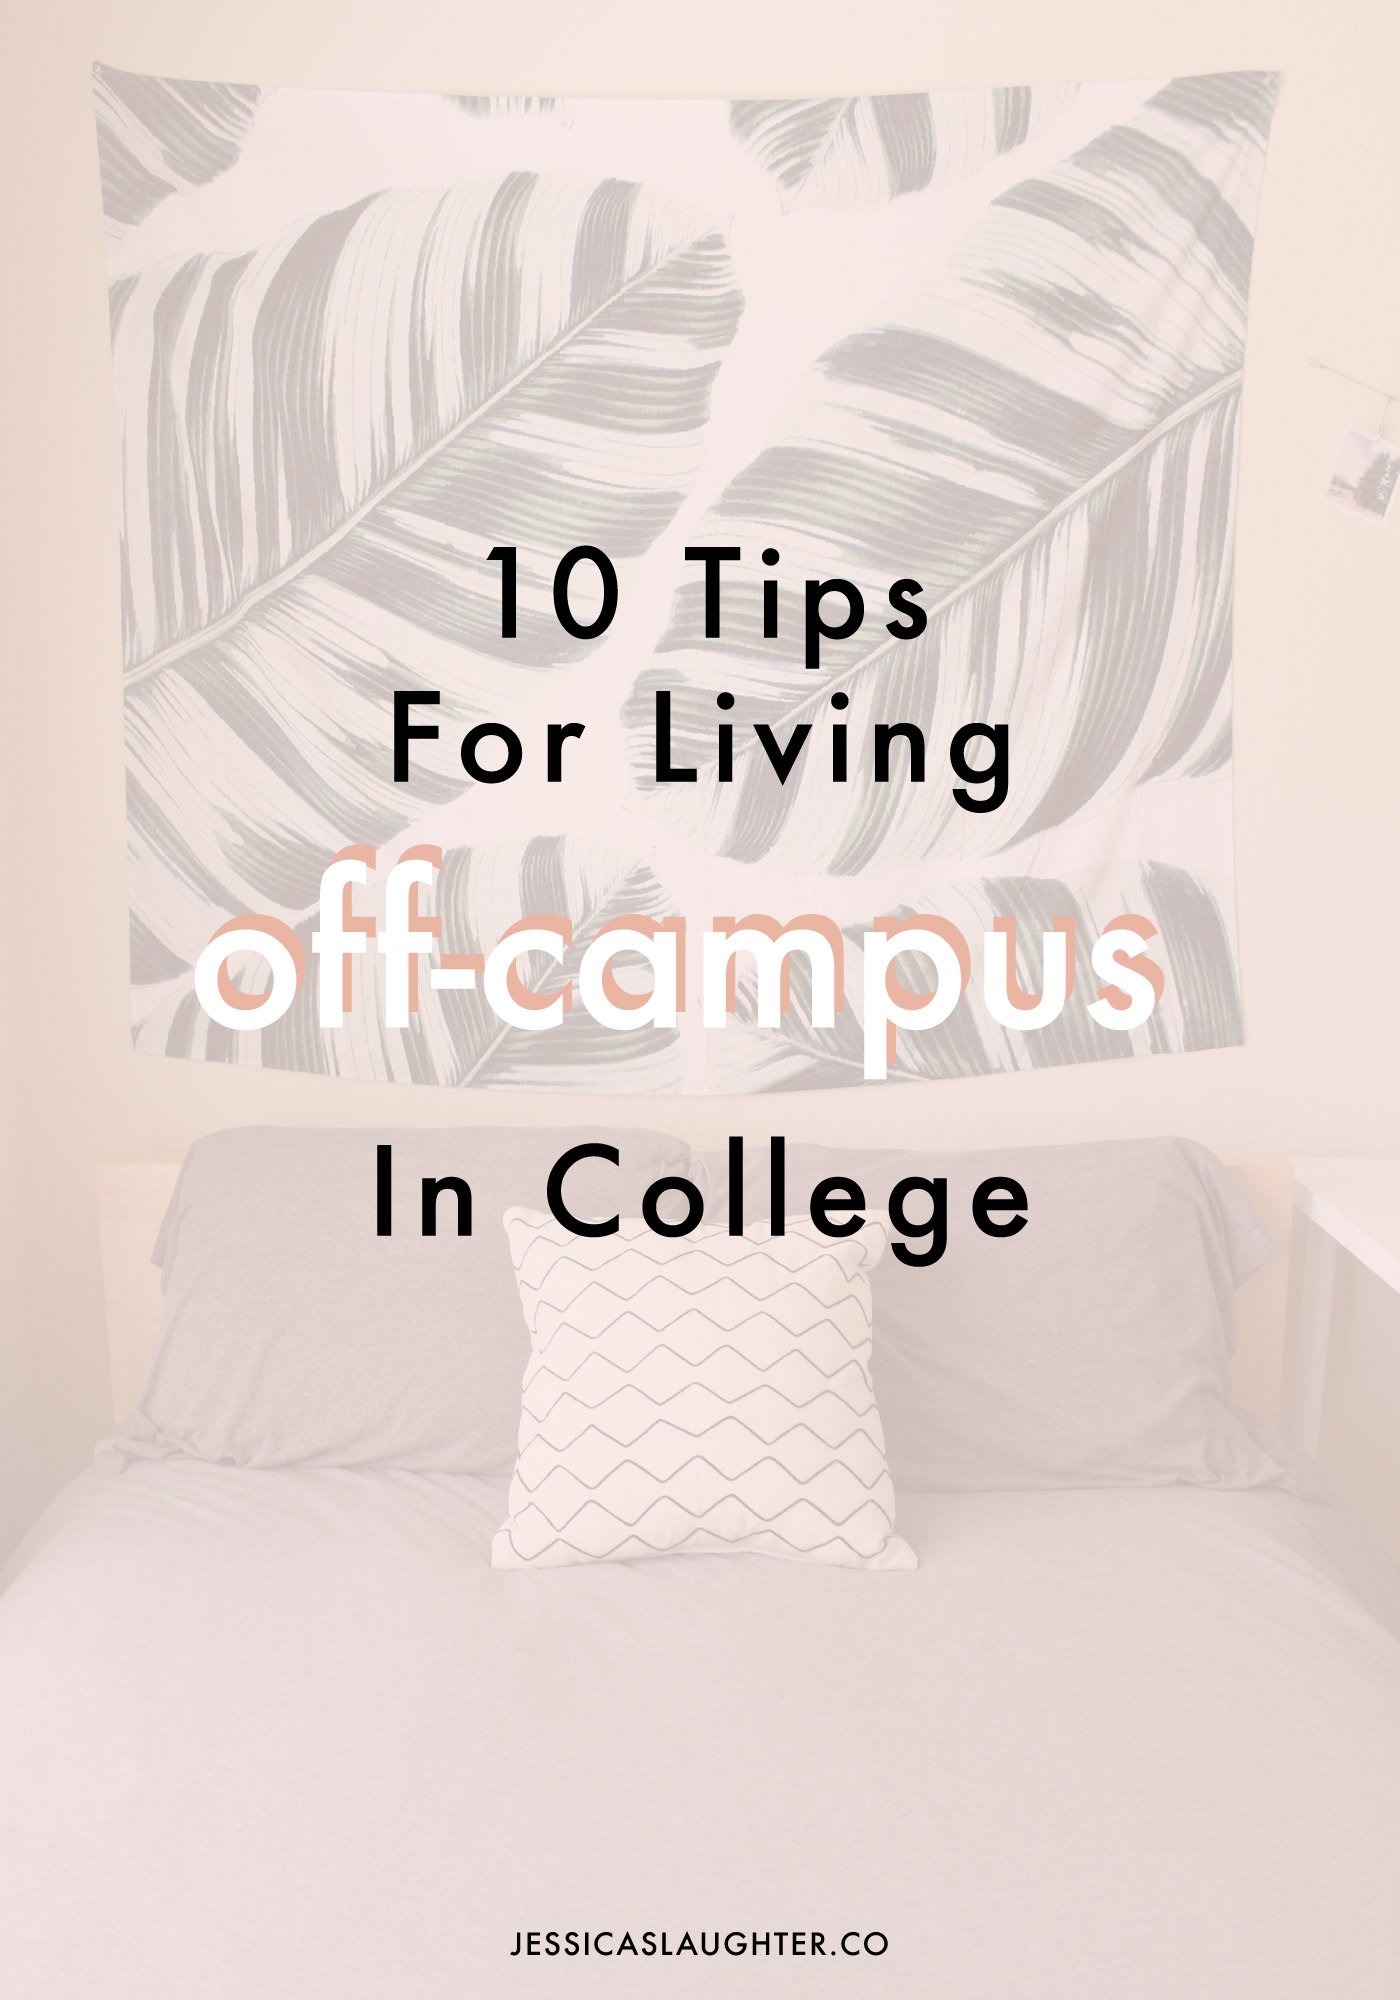 Tips For Living Off Campus In College | Jessica Slaughter